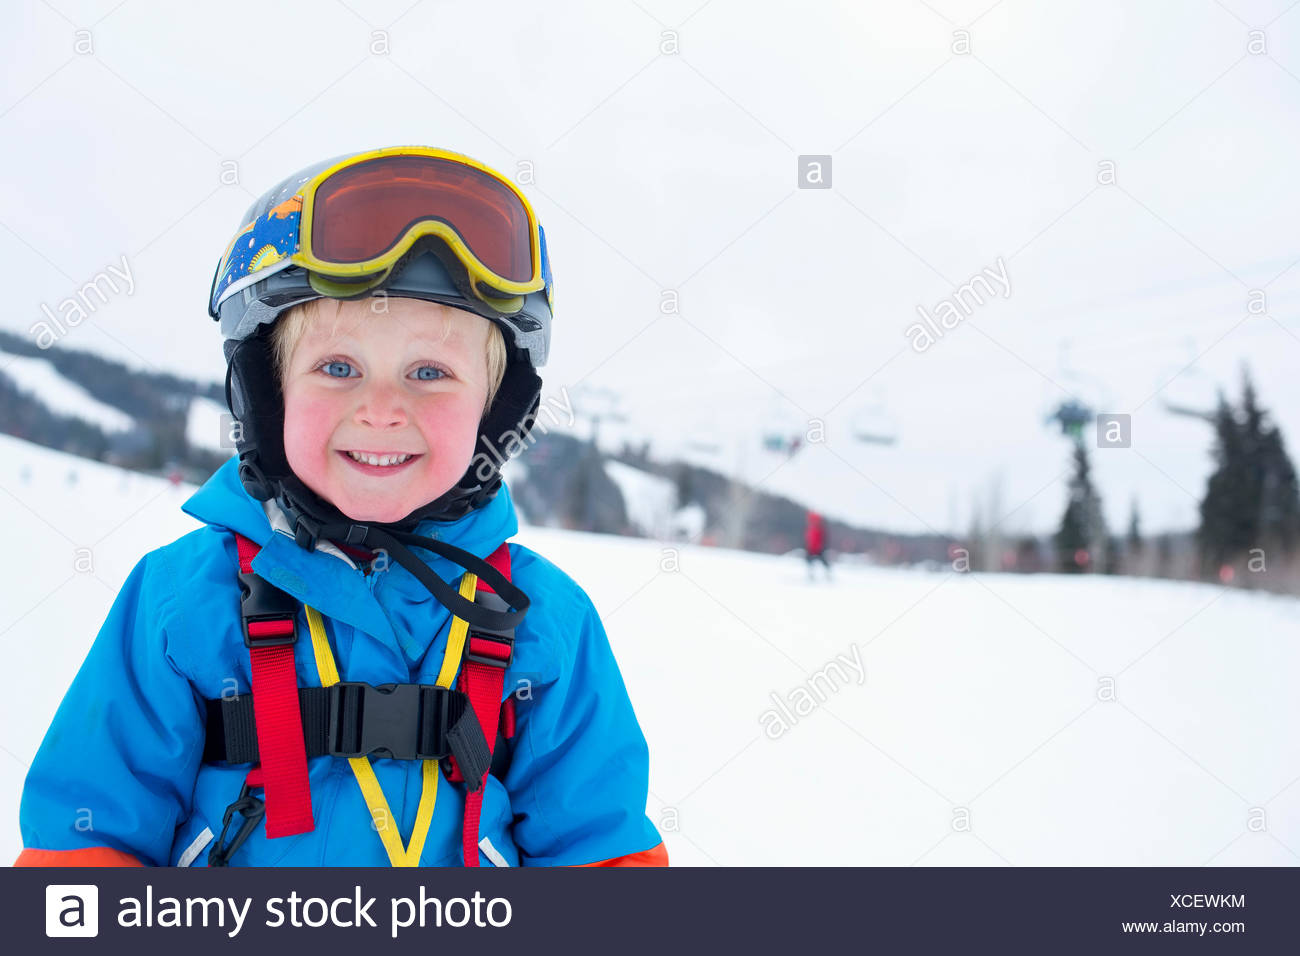 Smiley little boy (5) wearing ski suit in mountains - Stock Image